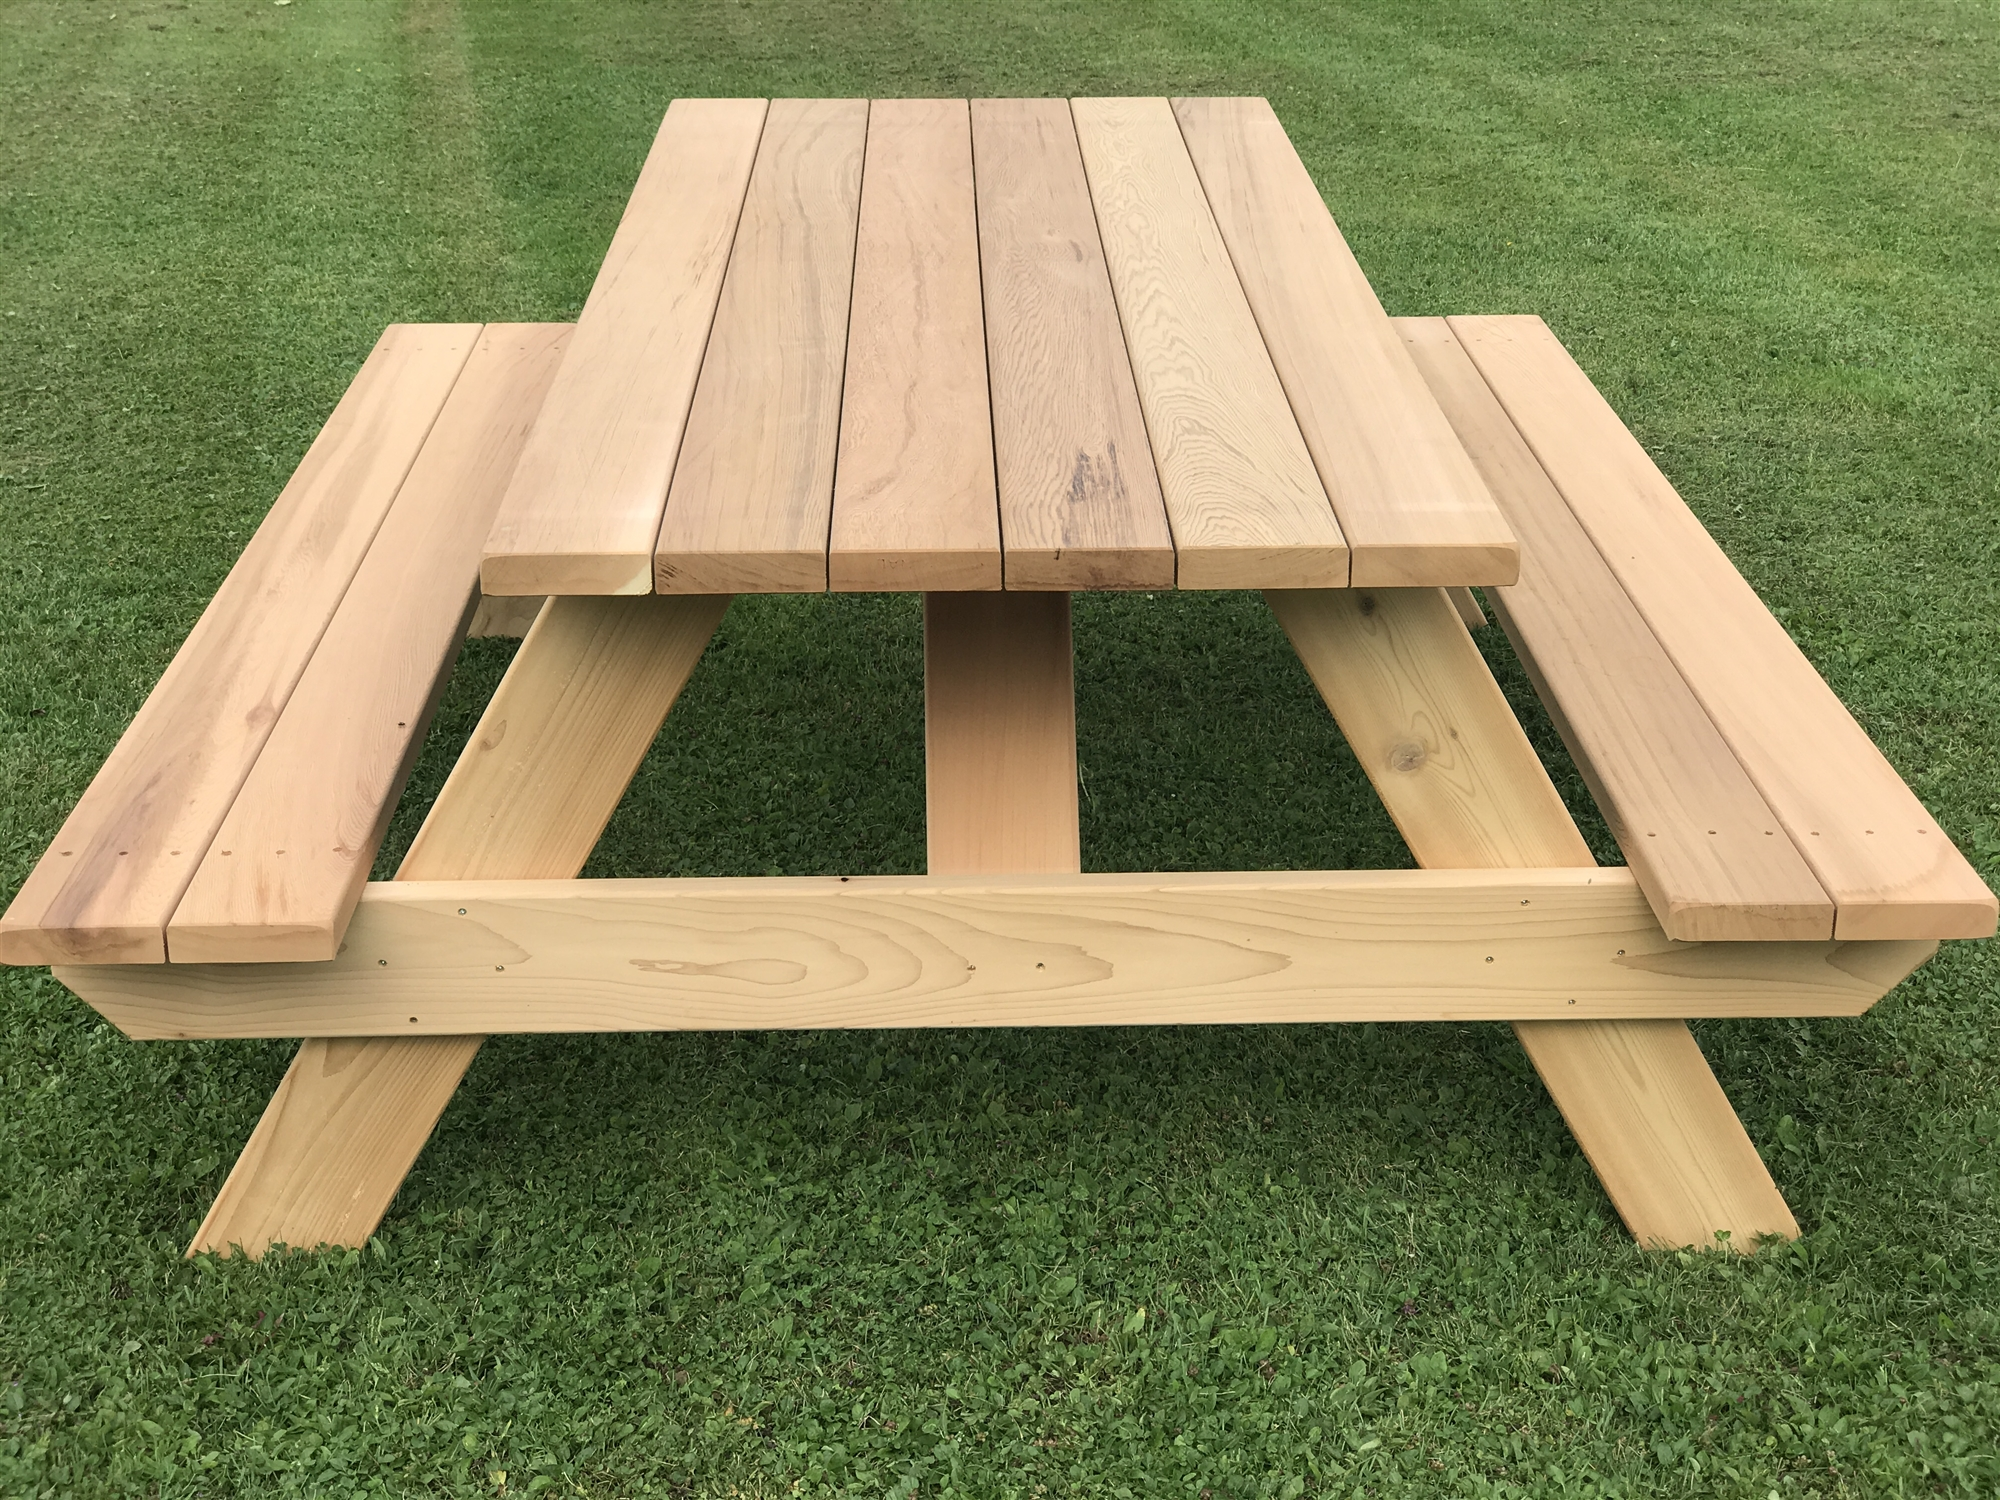 7 Heavy Duty Wooden Picnic Table For